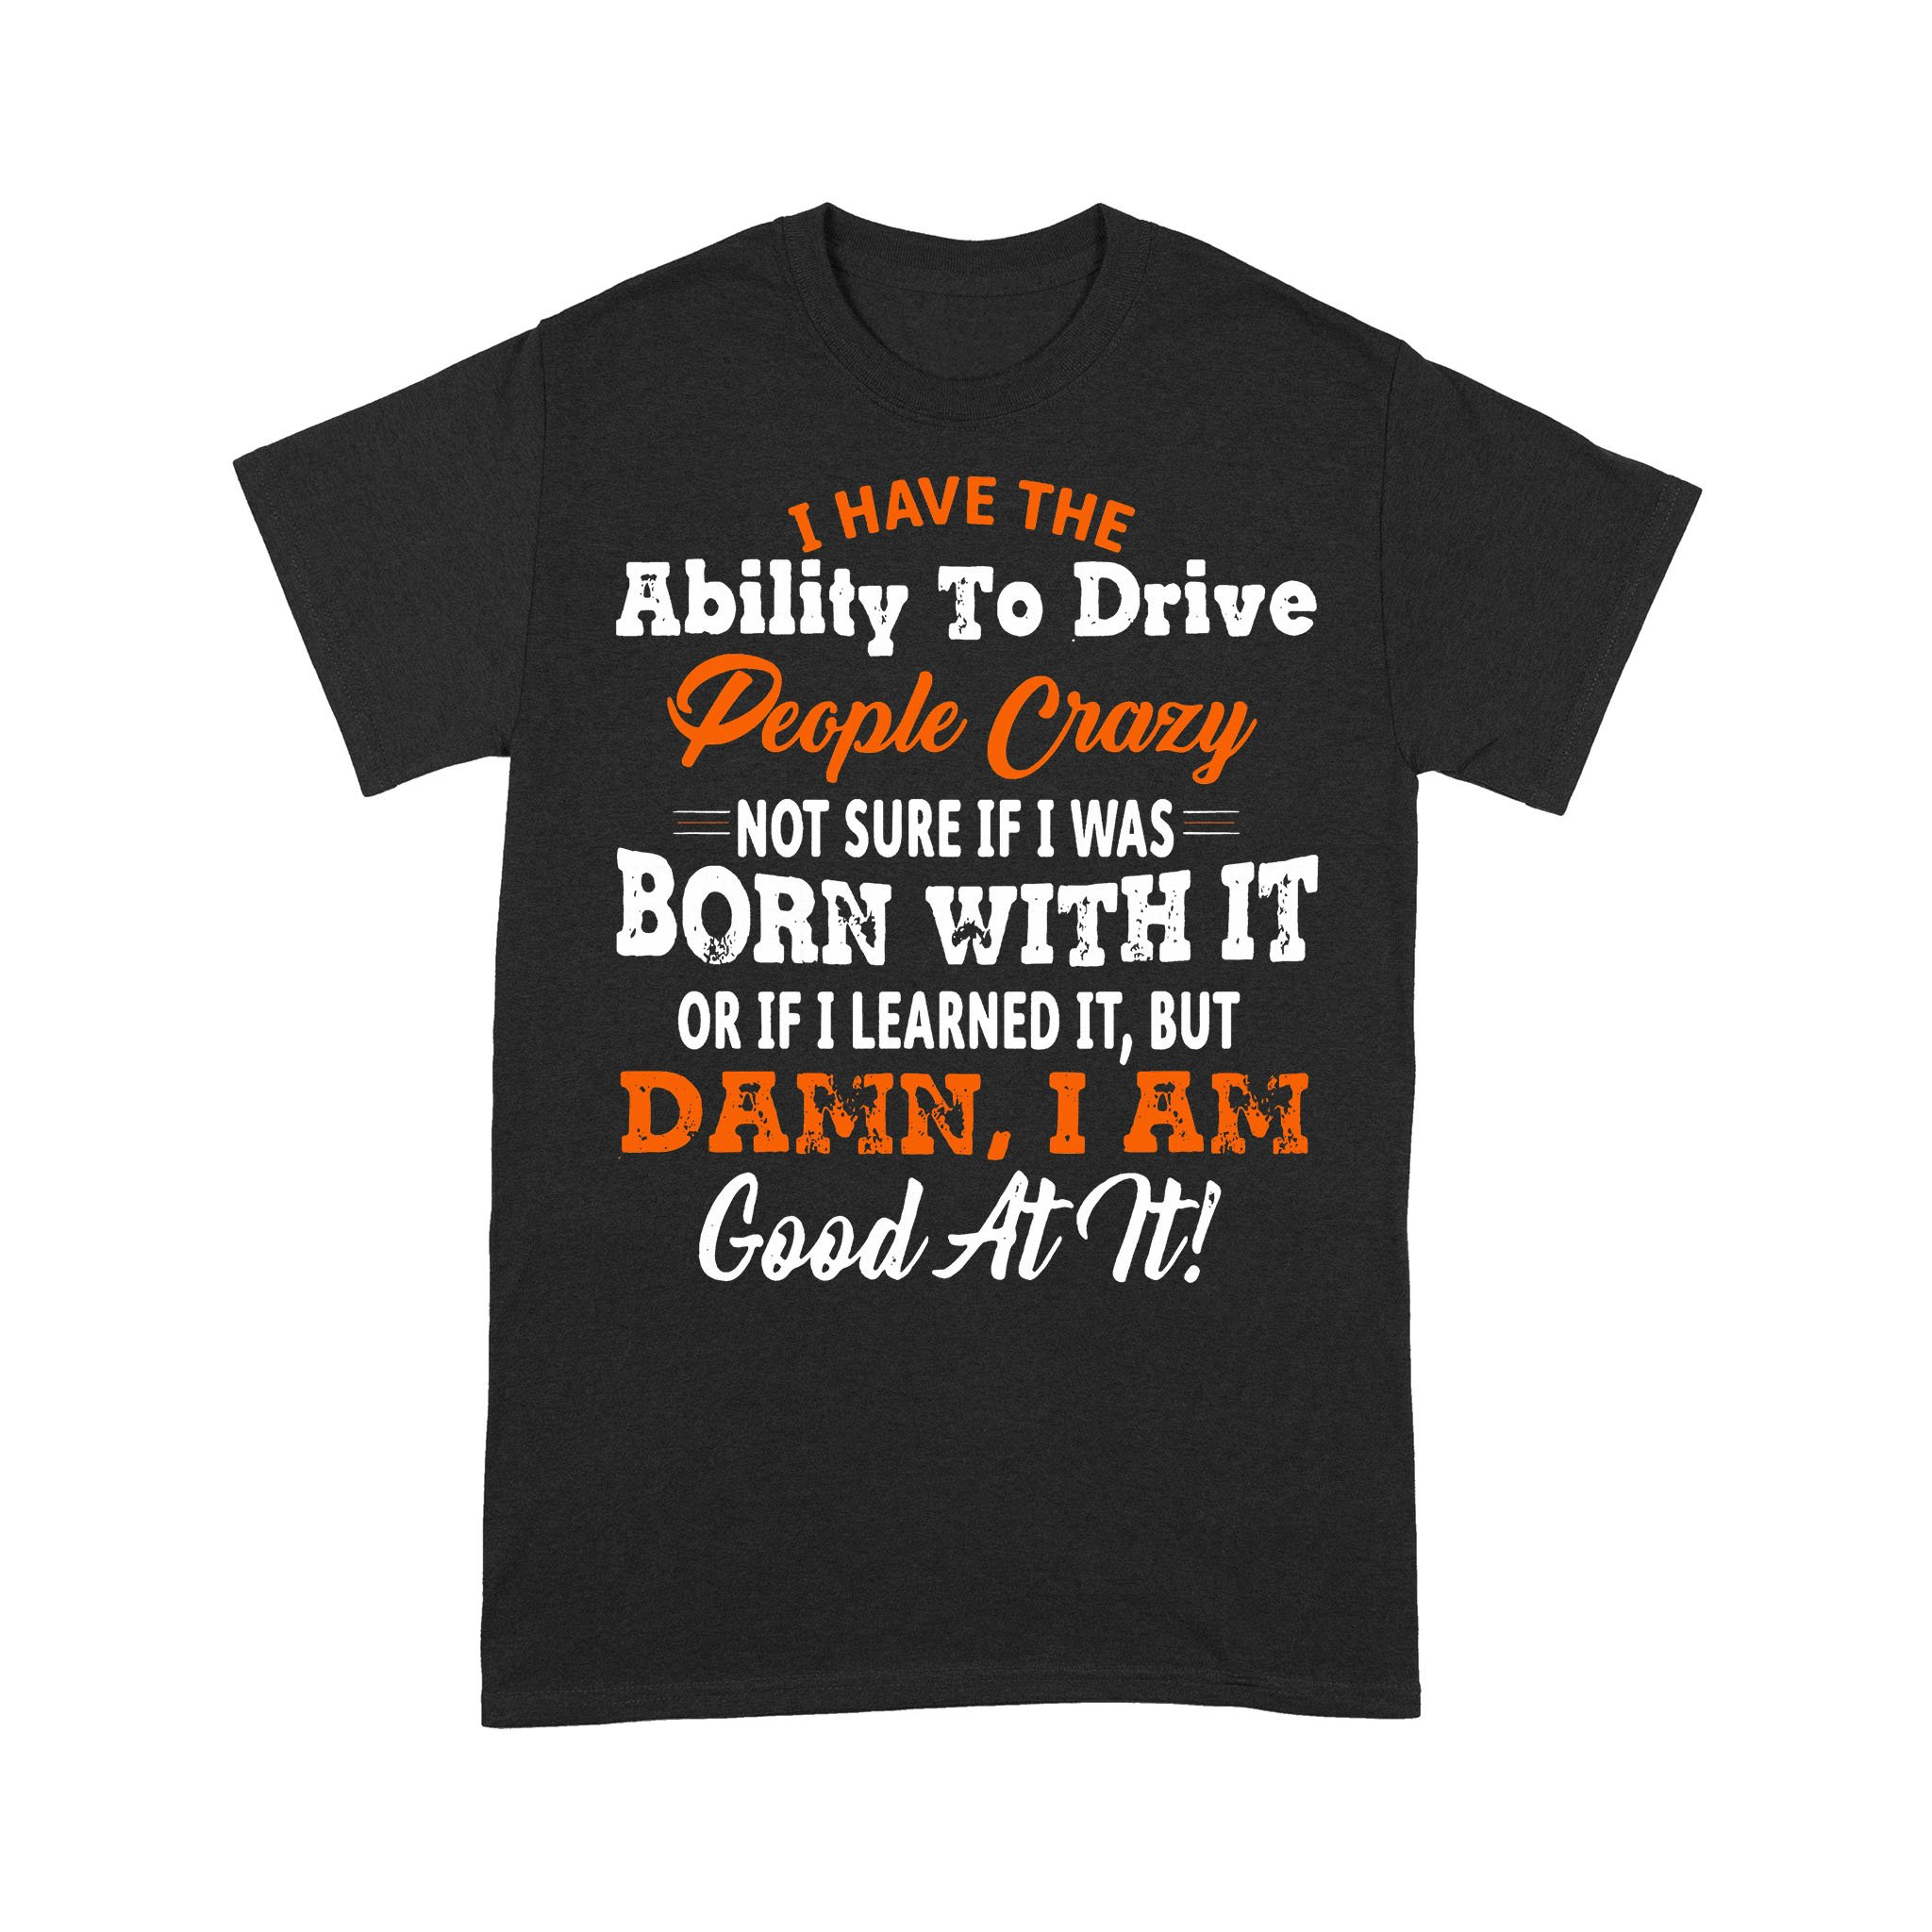 I Have The Ability To Drive People Crazy Not Sure If I Was Born With It Or If I Learned It But Damn I Am Good At It T-shirt